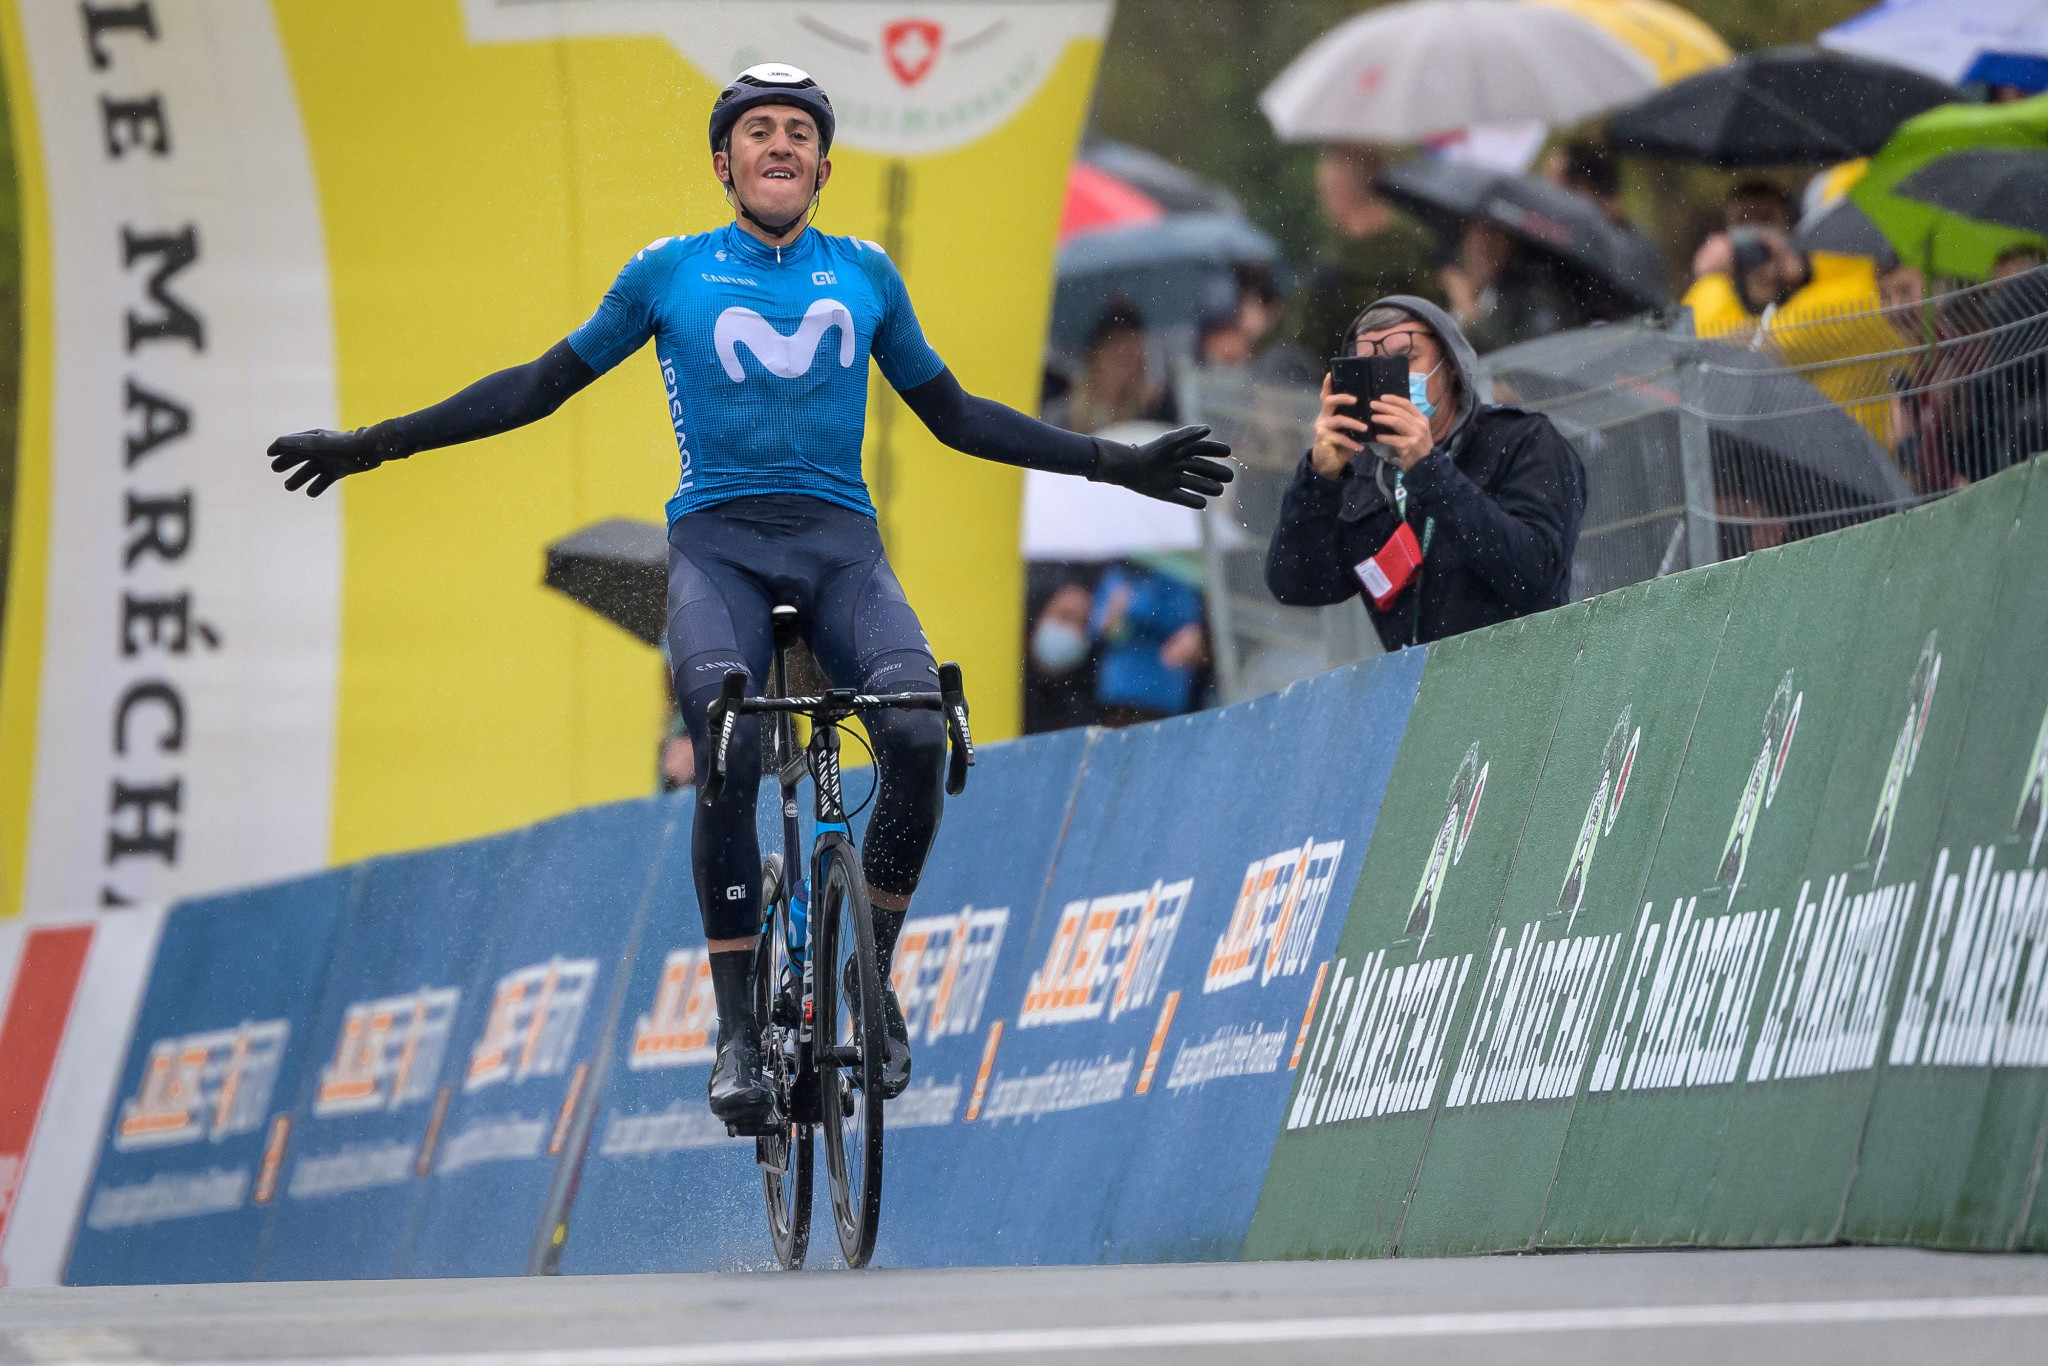 Soler wins third stage of Tour de Romandie solo to take race lead